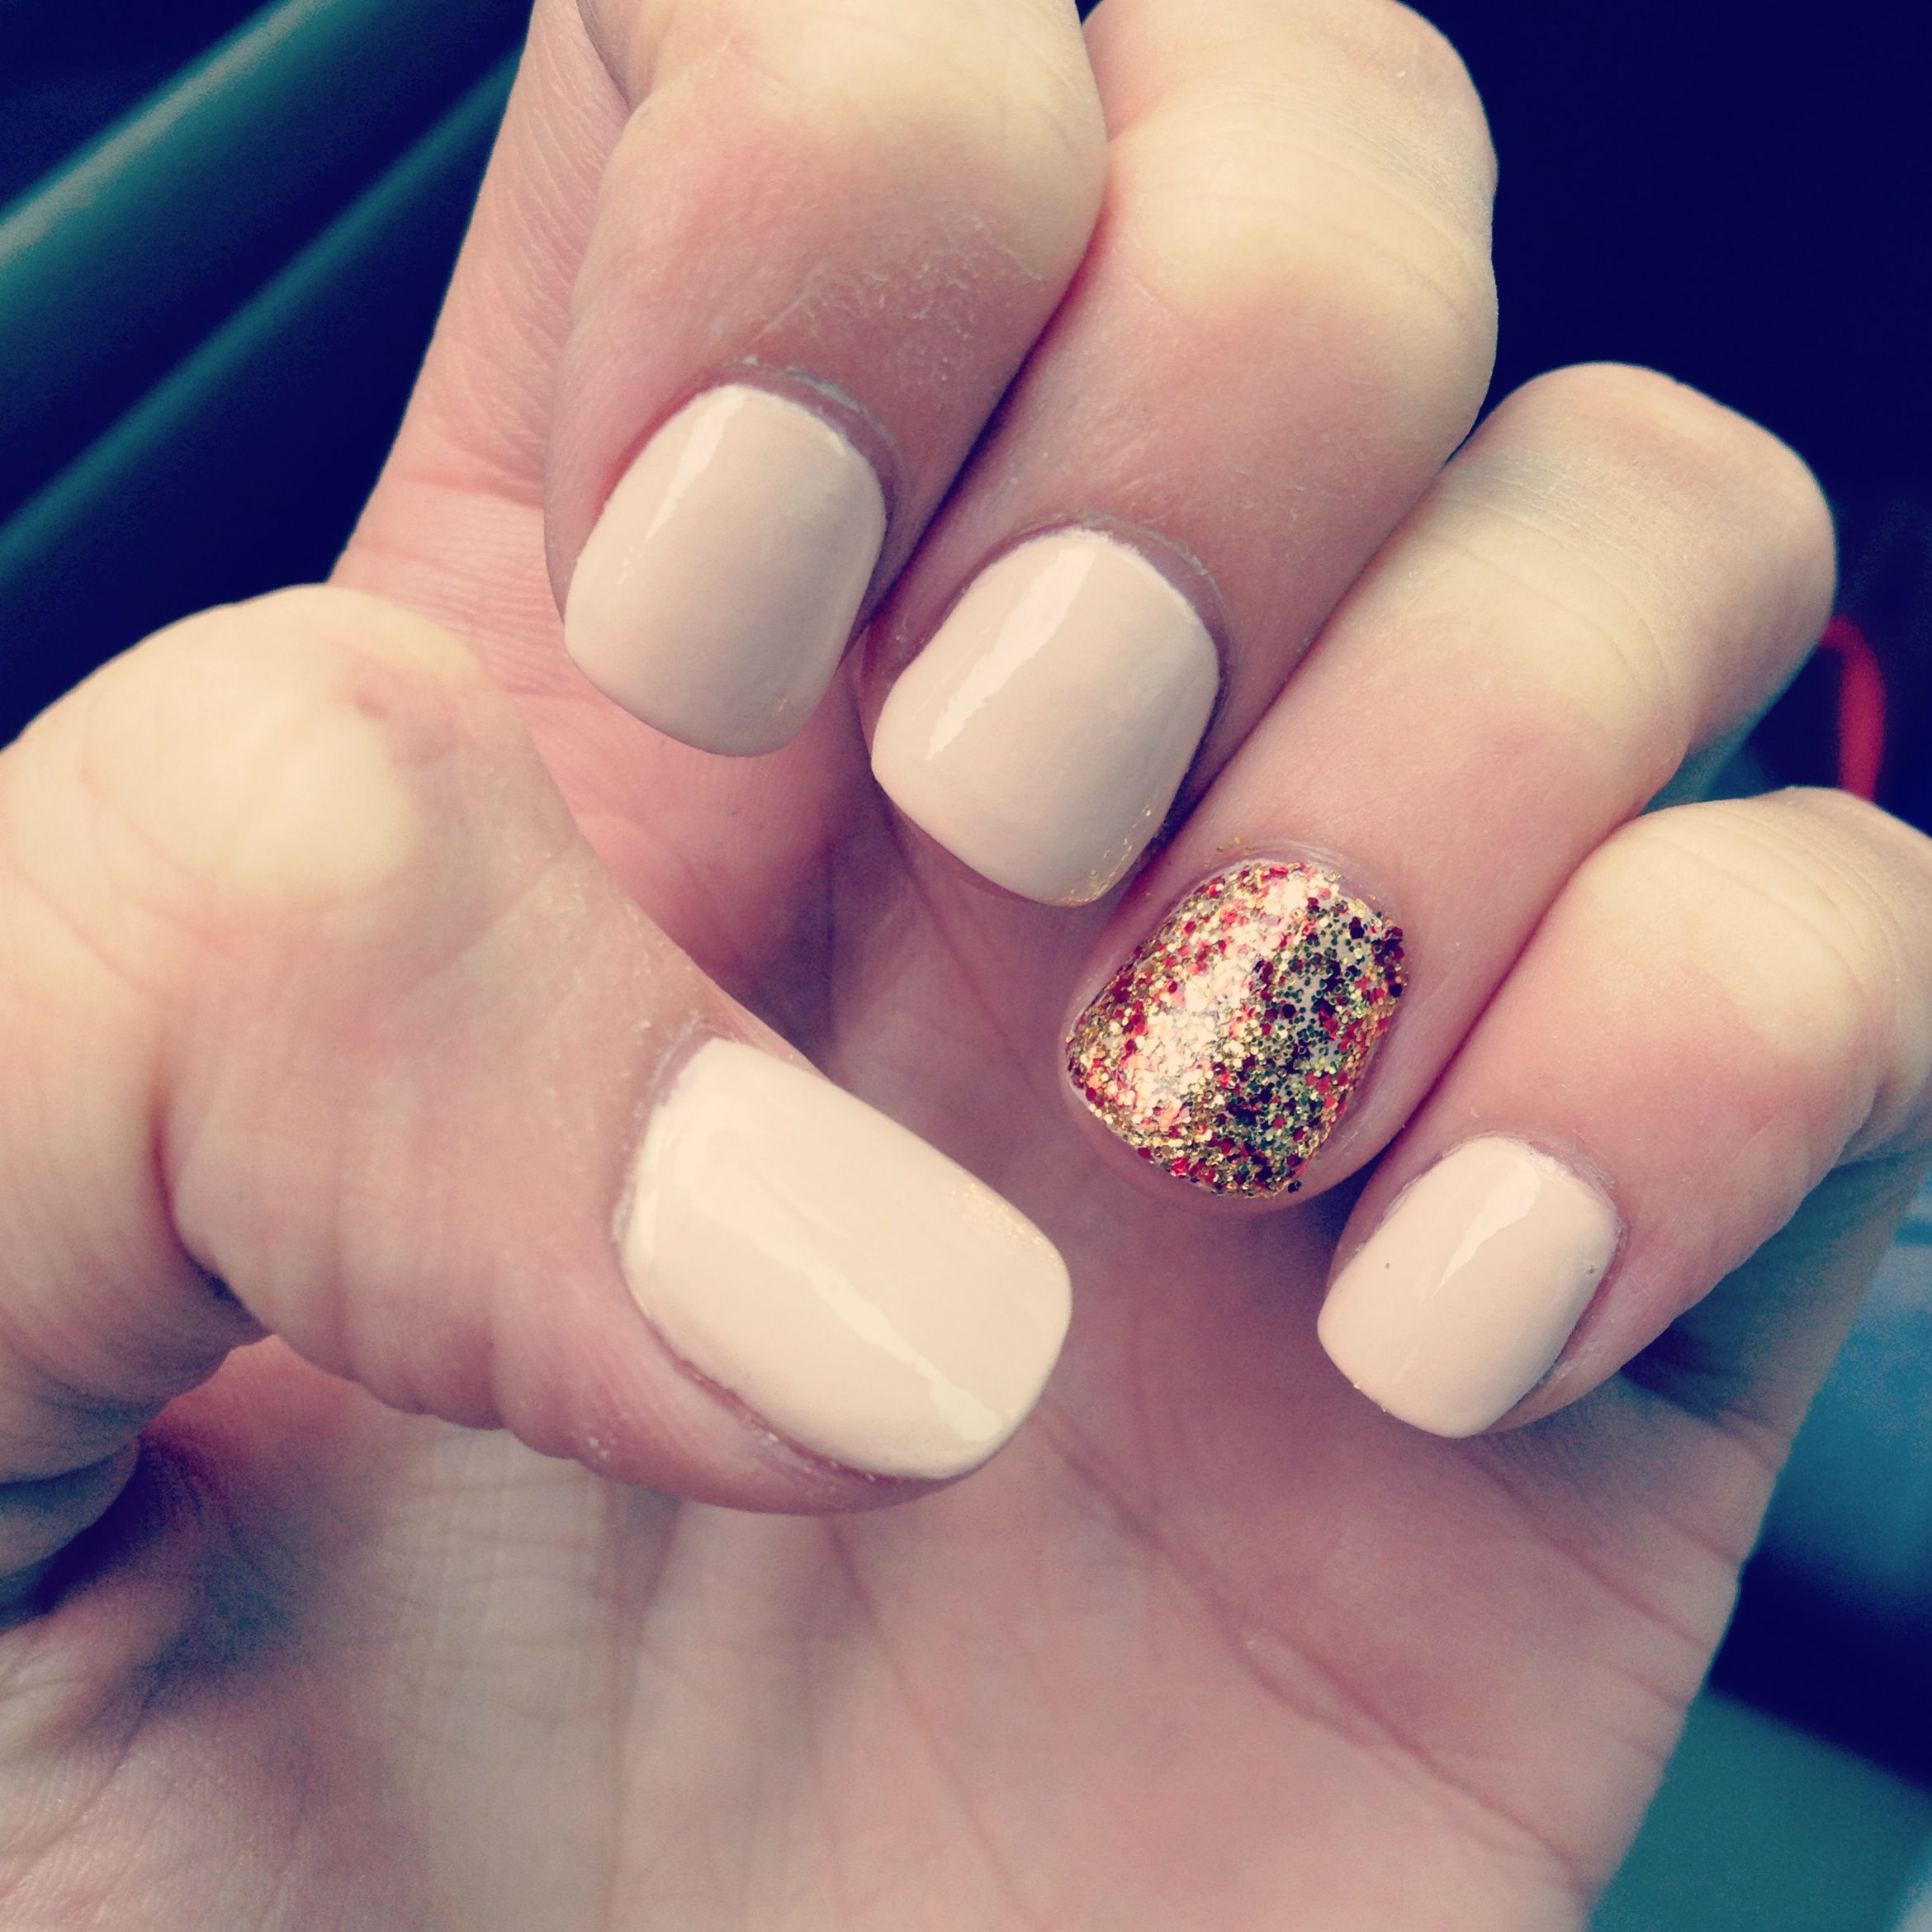 Nude nails with red and gold glitter accent nail | My Style | Pinterest